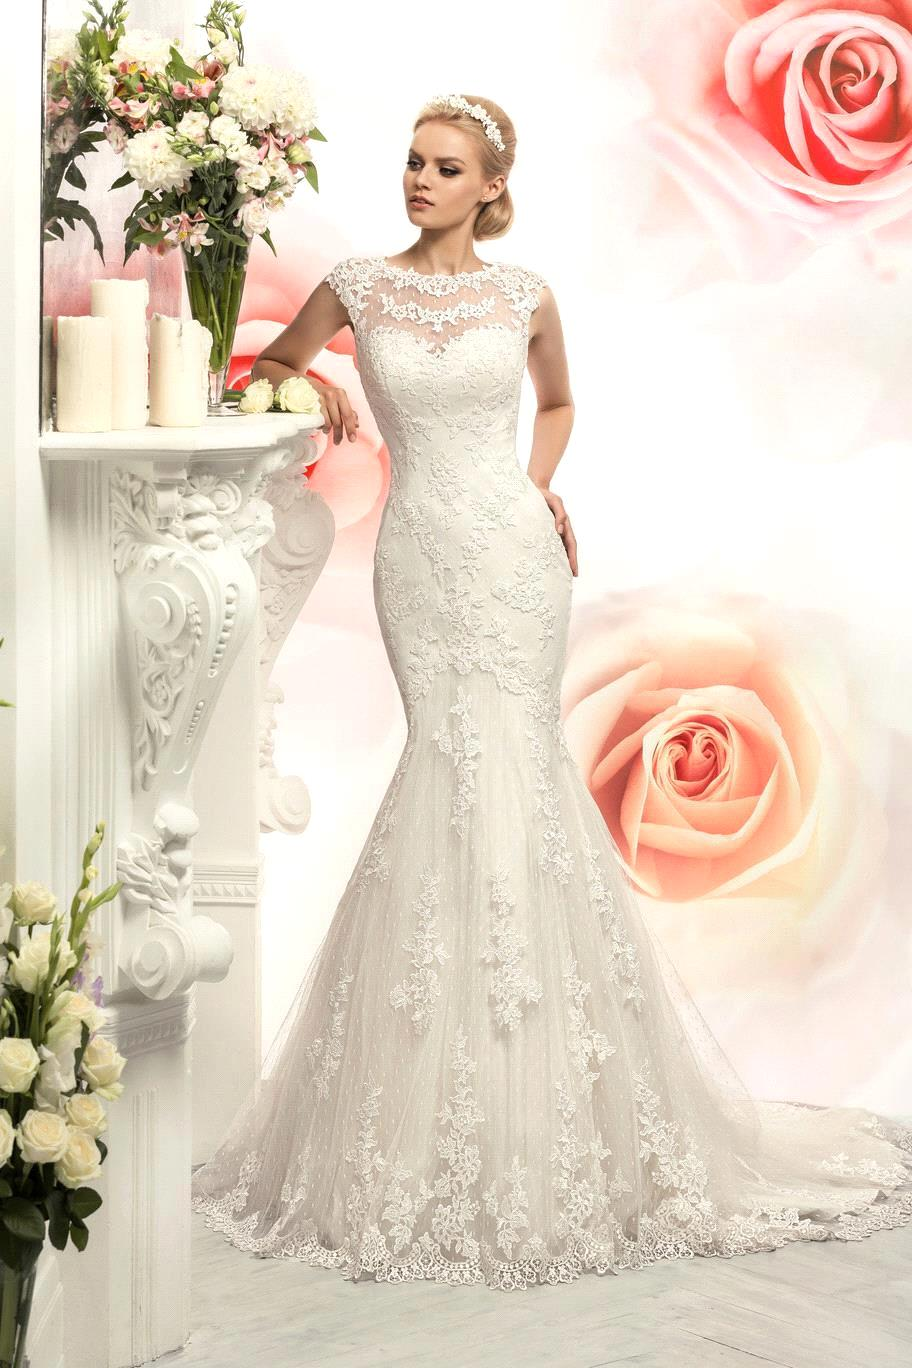 New Arrival V Neck Lace Appliques Wedding Dress 2019 Ns1442 Elegant In Style Weddings & Events